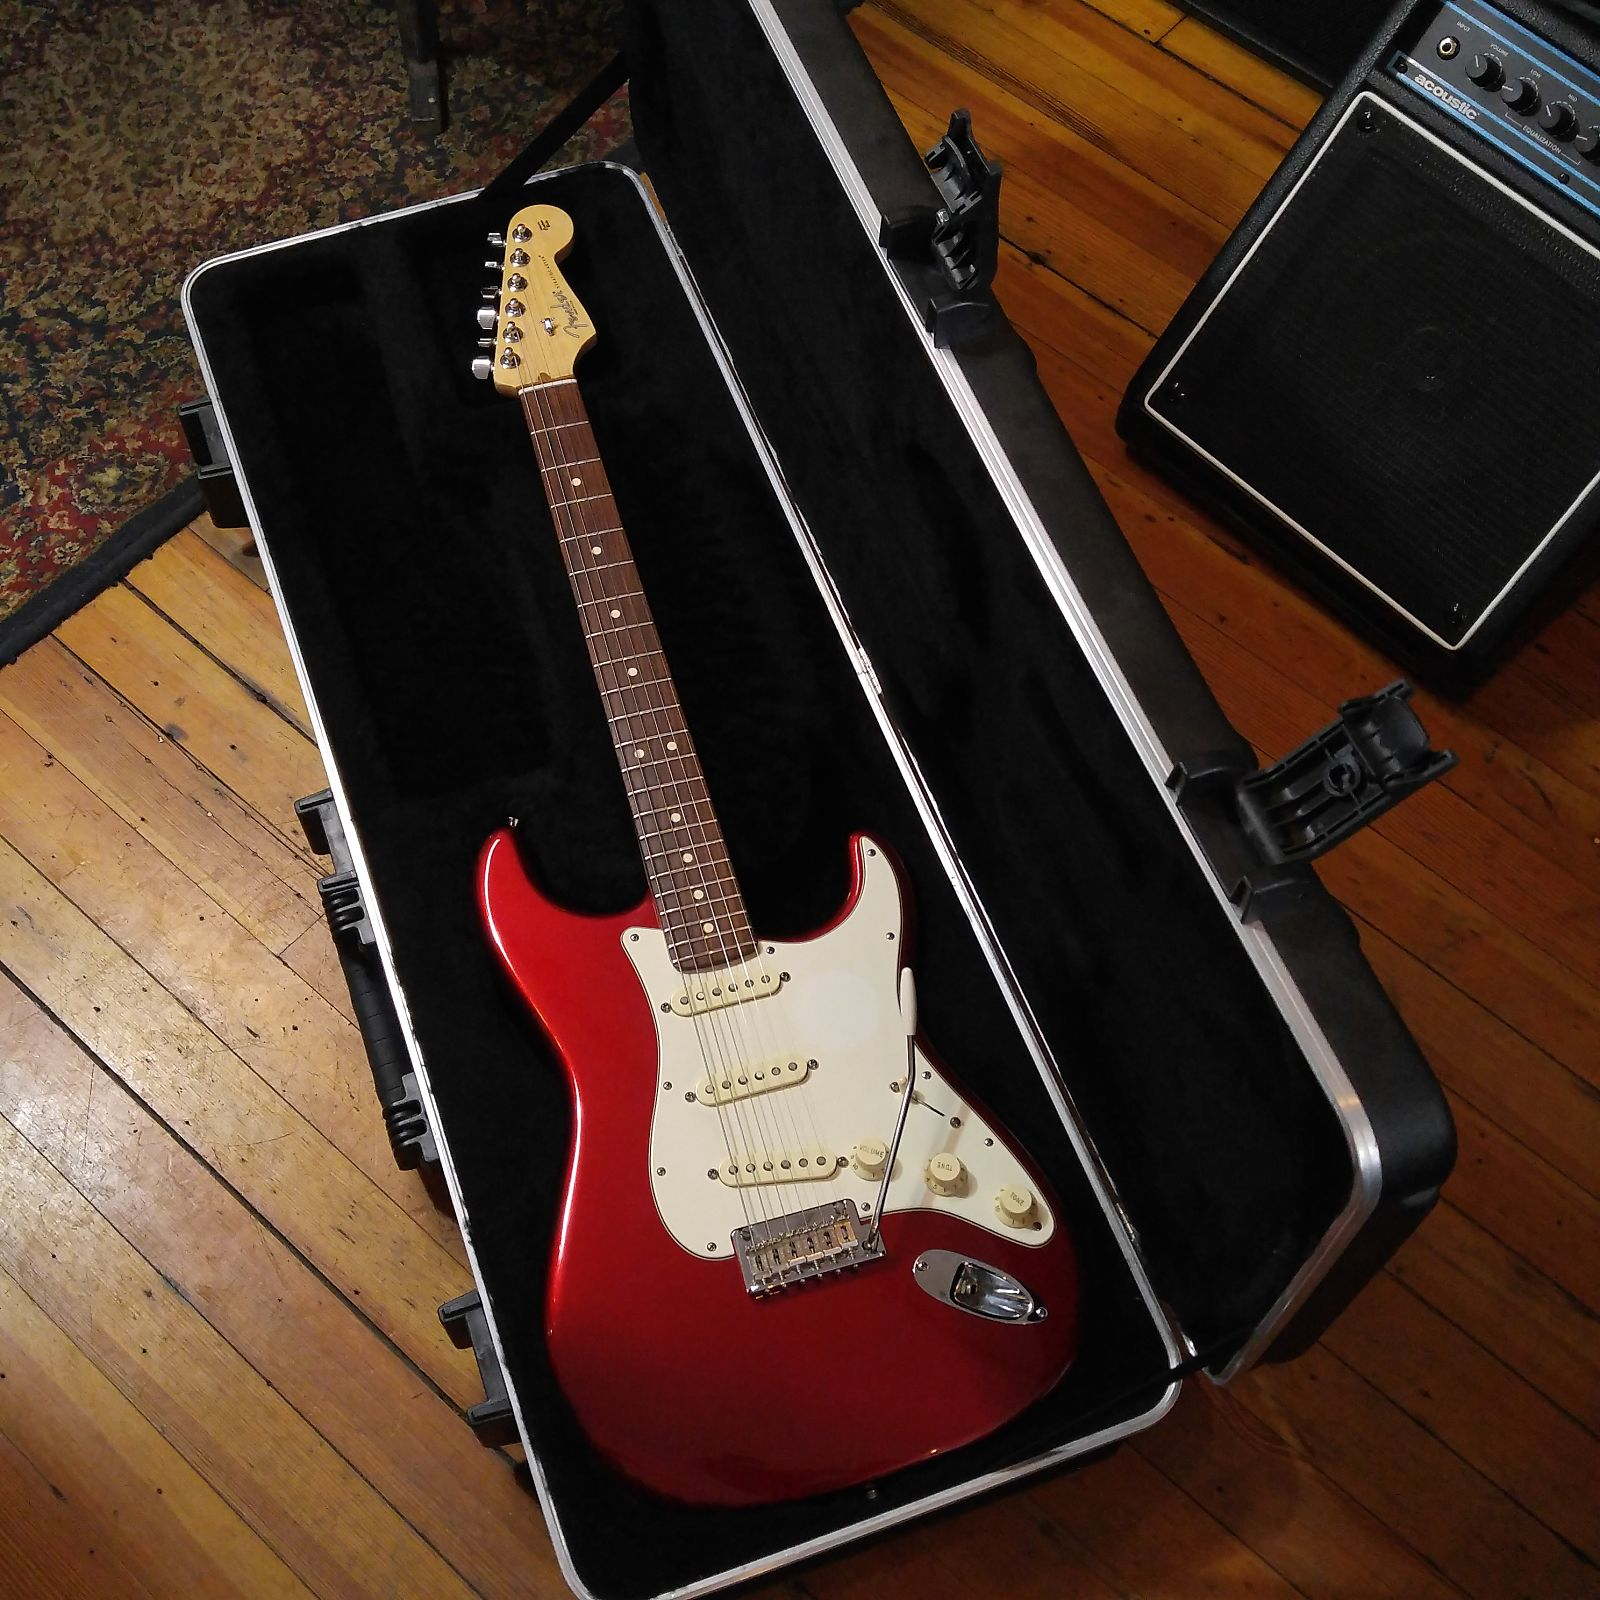 Fender American Standard Stratocaster 2013 Candy Apple Red Rosewood Neck  #US13084237 w/Fender Case